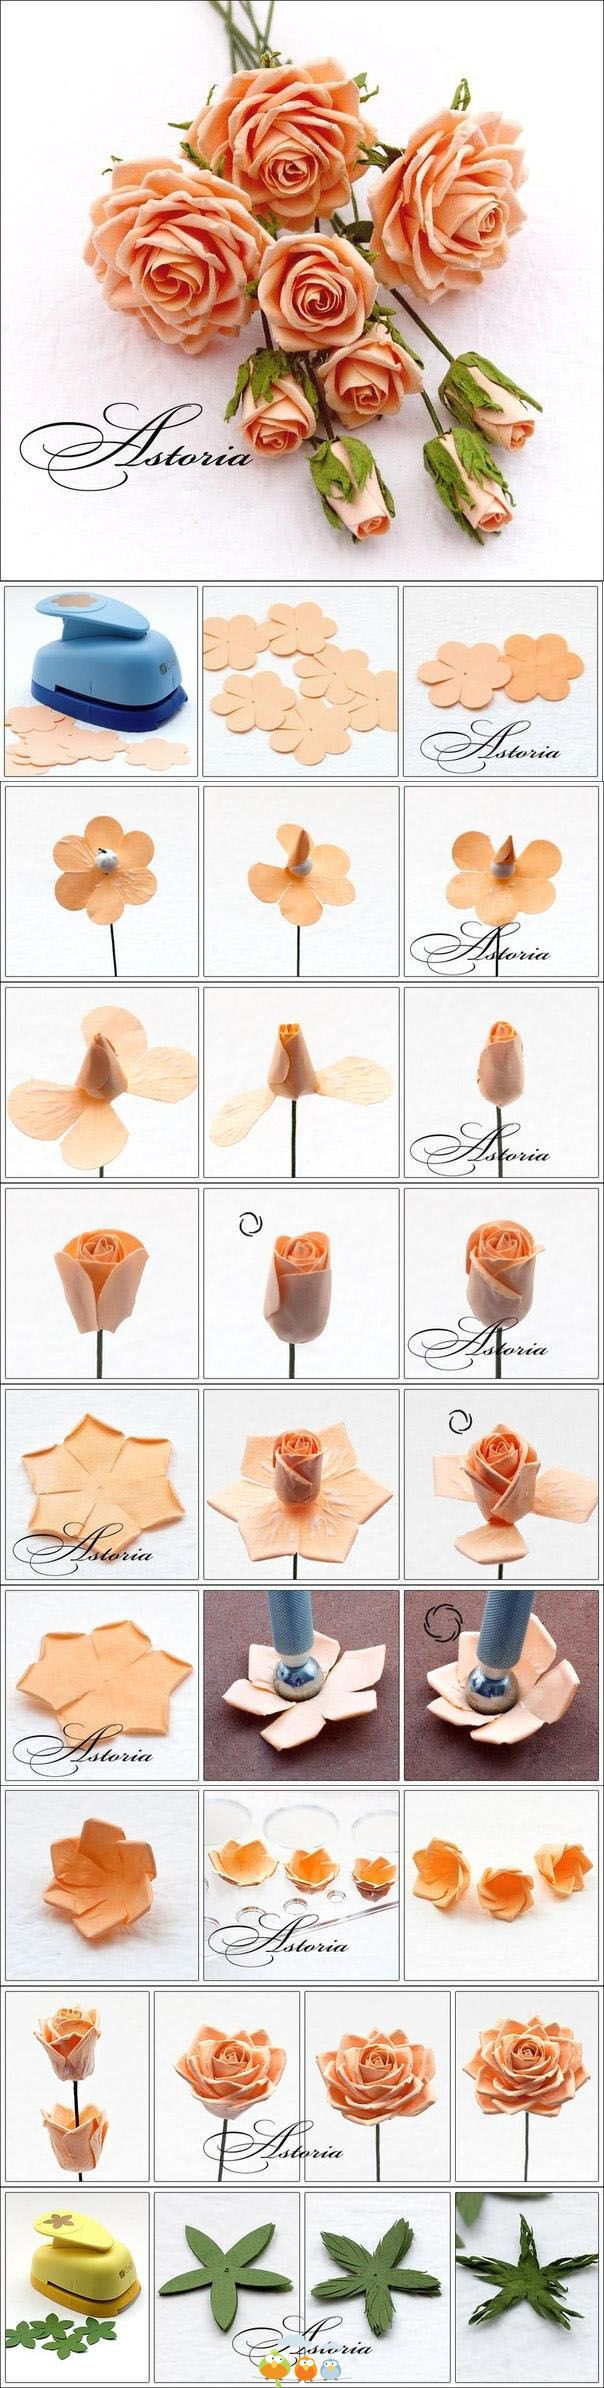 DIY Flowers flowers diy crafts home made easy crafts craft idea crafts ideas diy…